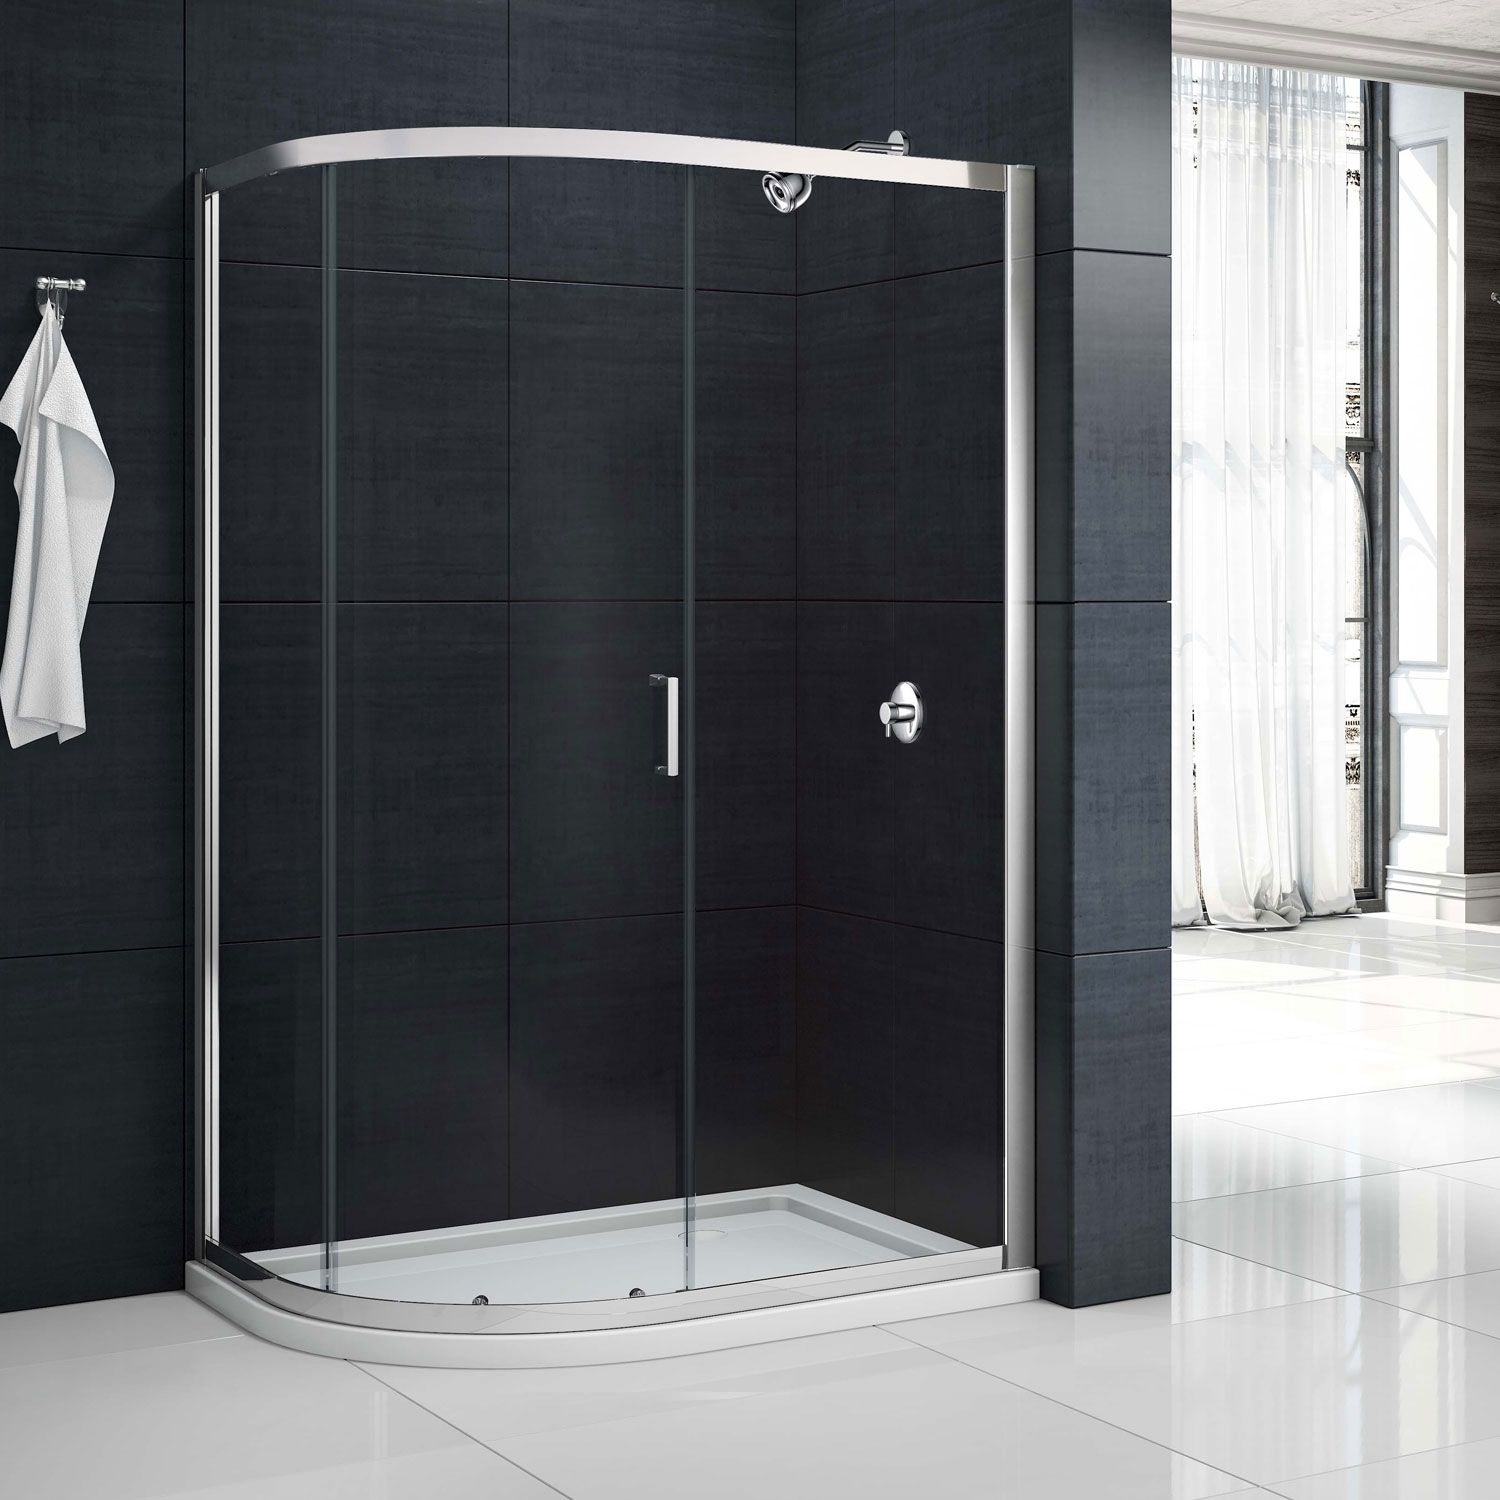 Merlyn Mbox Single Offset Quadrant Shower Enclosure 1000Mm X 800Mm